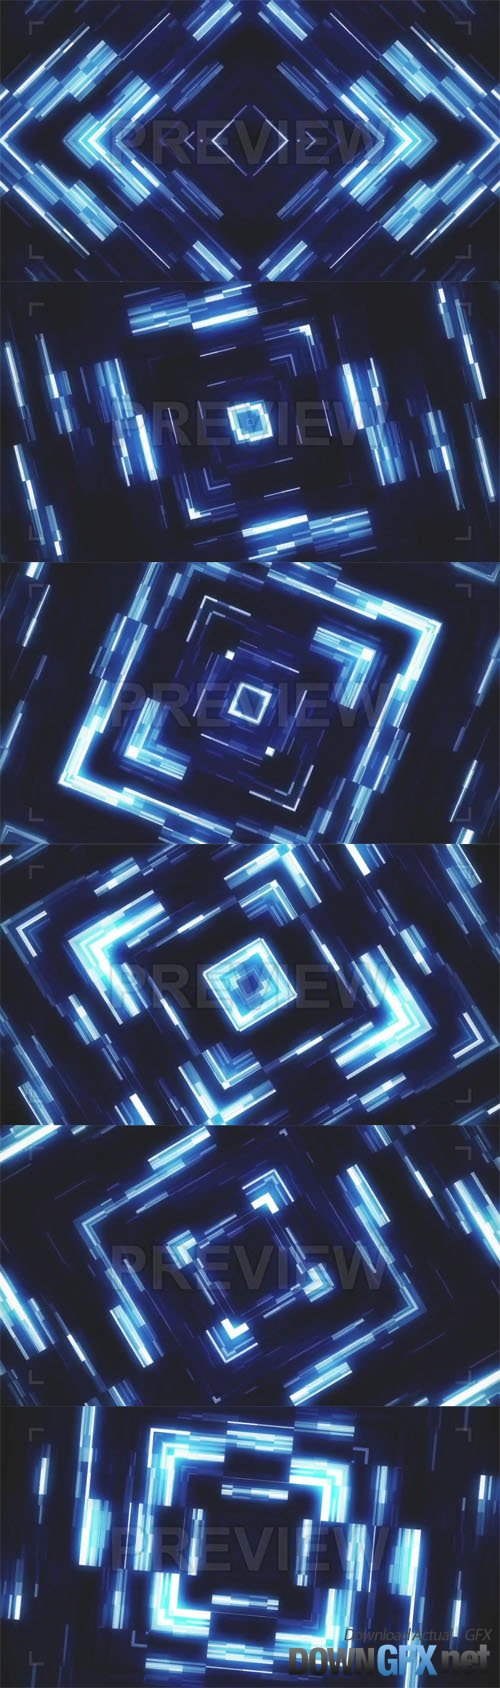 Glowing KaleidoSquares Abstract Vj Loop